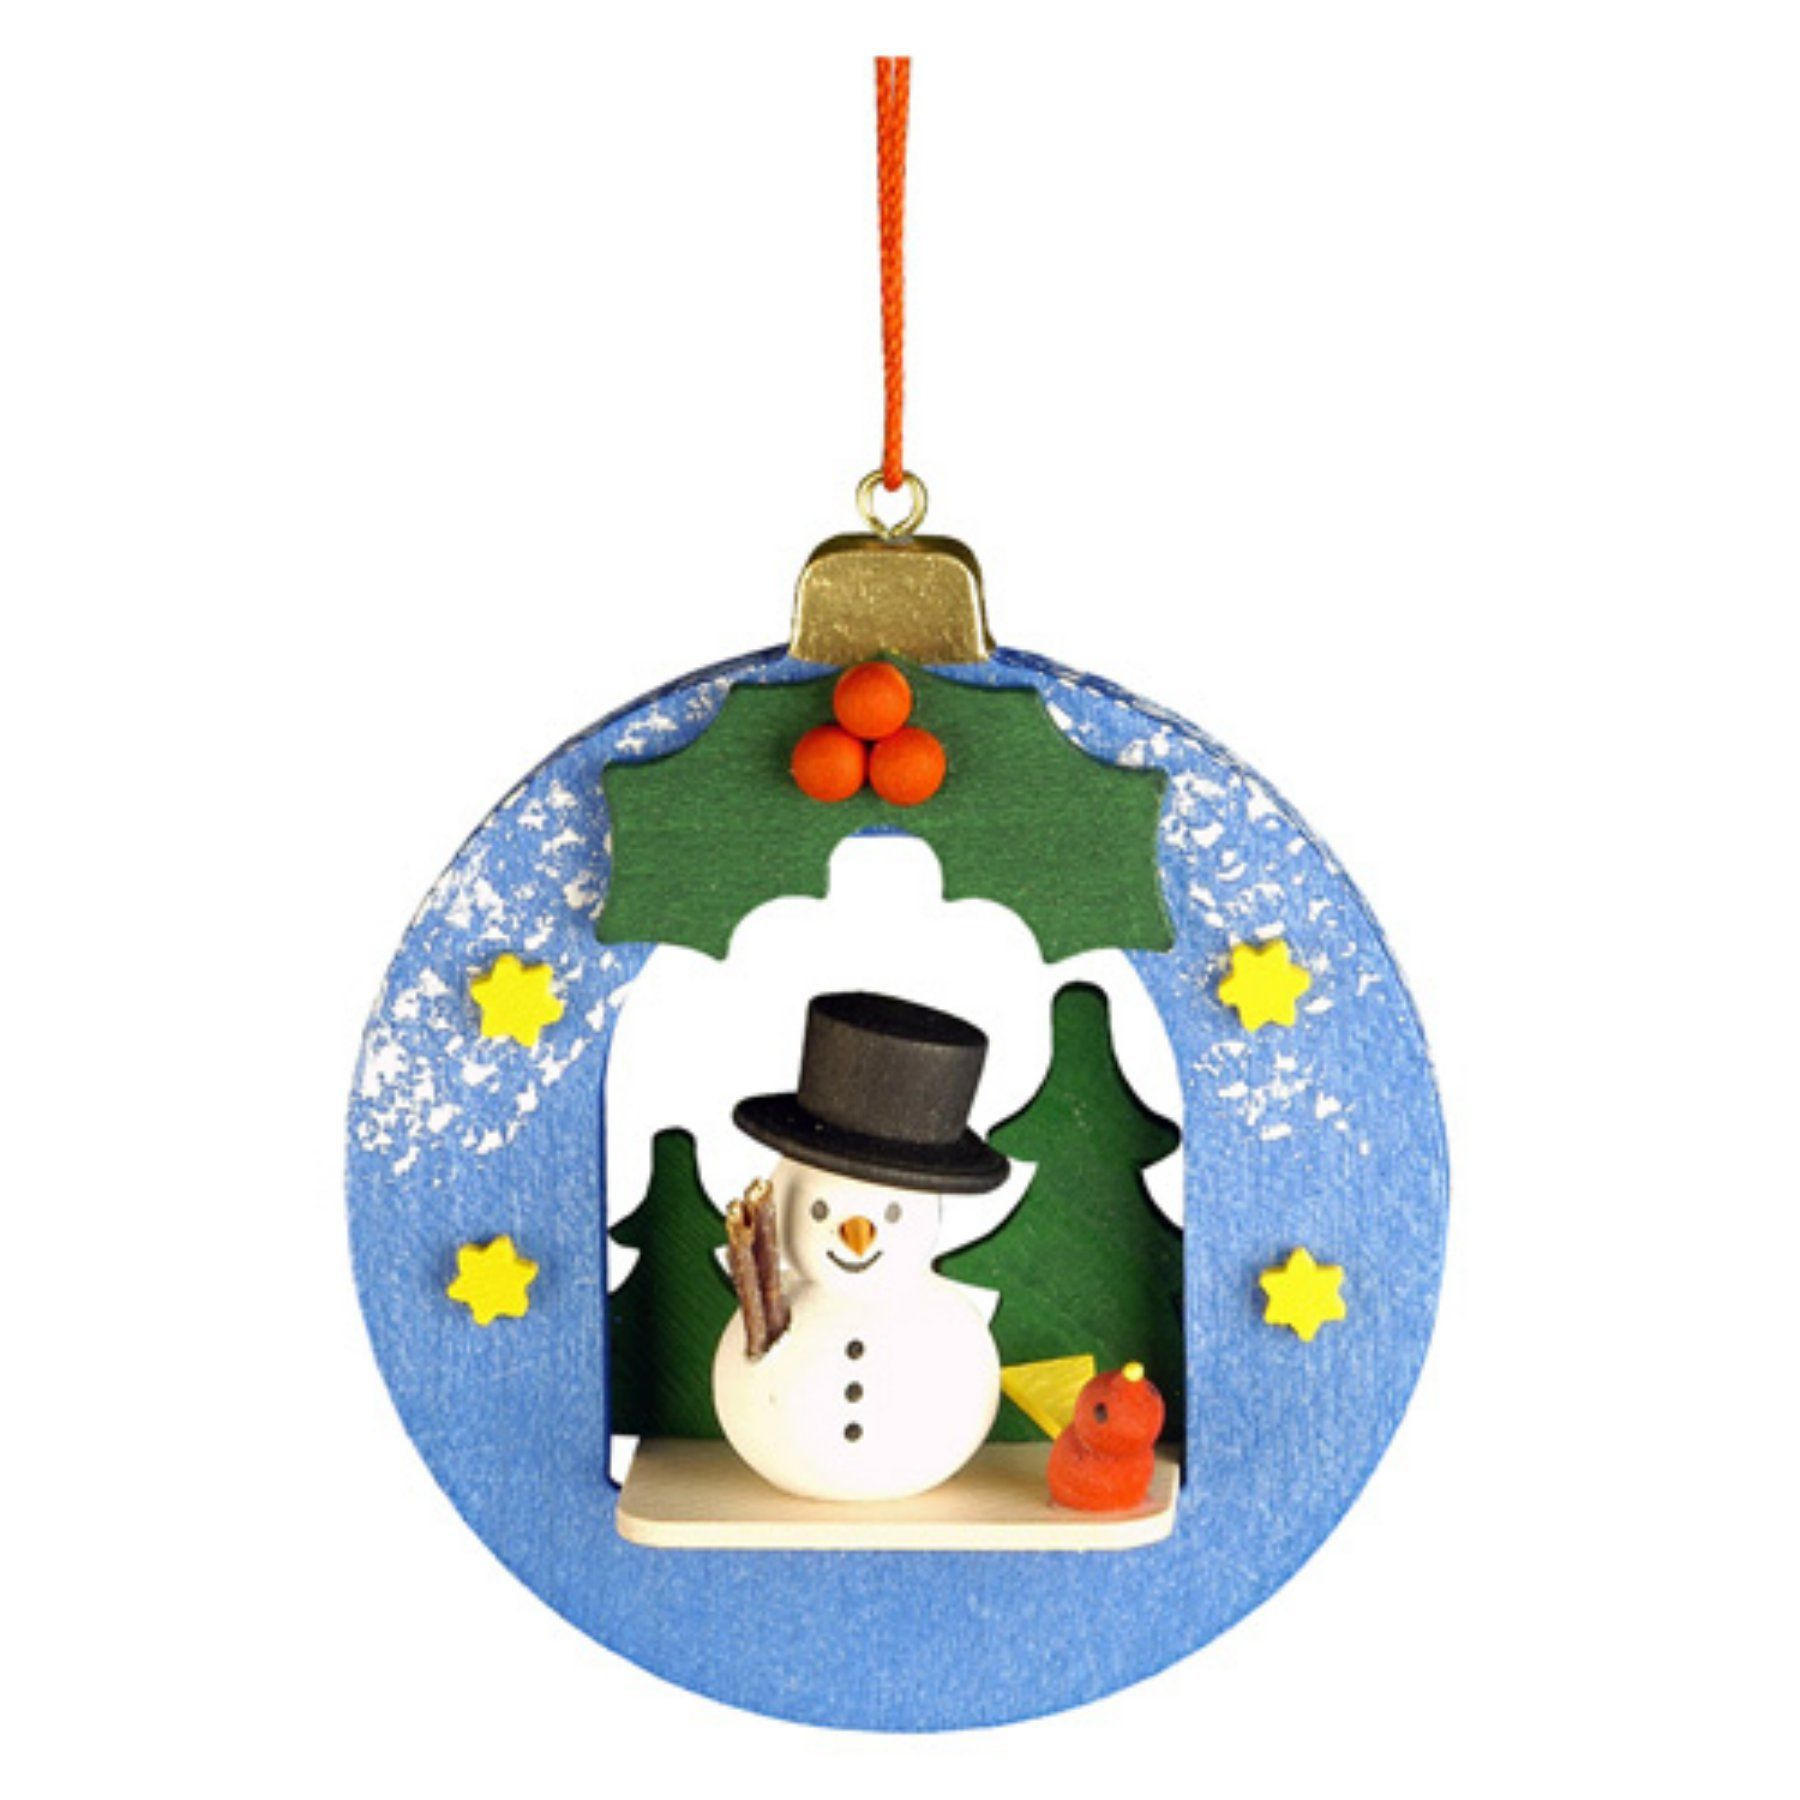 Christian ulbricht snowman in xmas ball ornament products